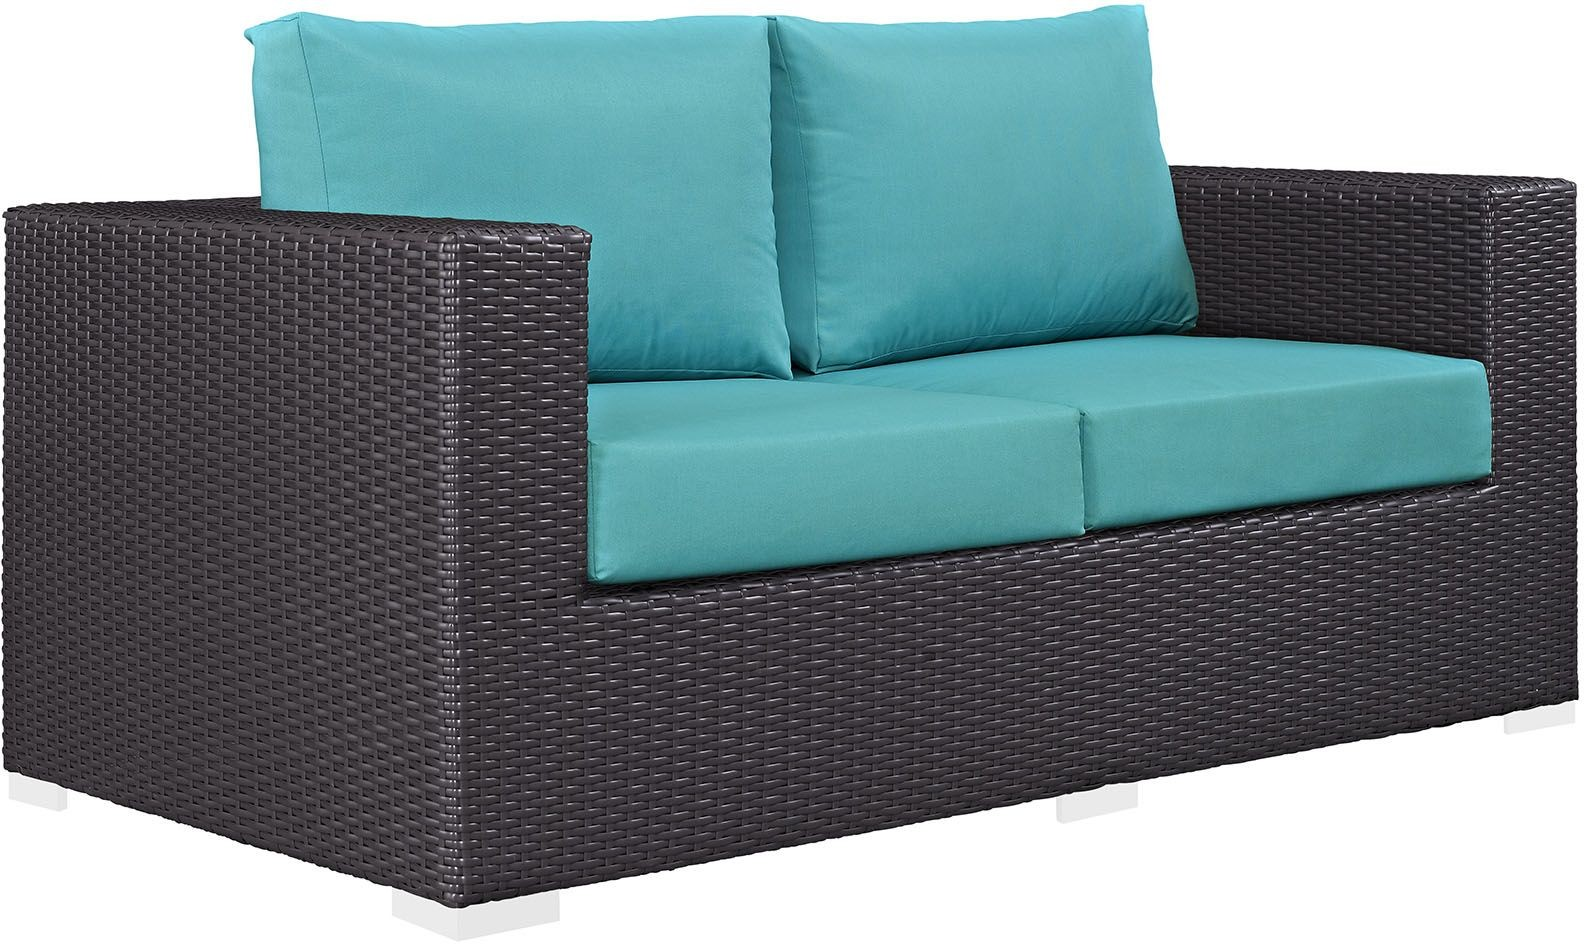 Convene Espresso Turquoise Outdoor Patio Loveseat From Renegade Coleman Furniture